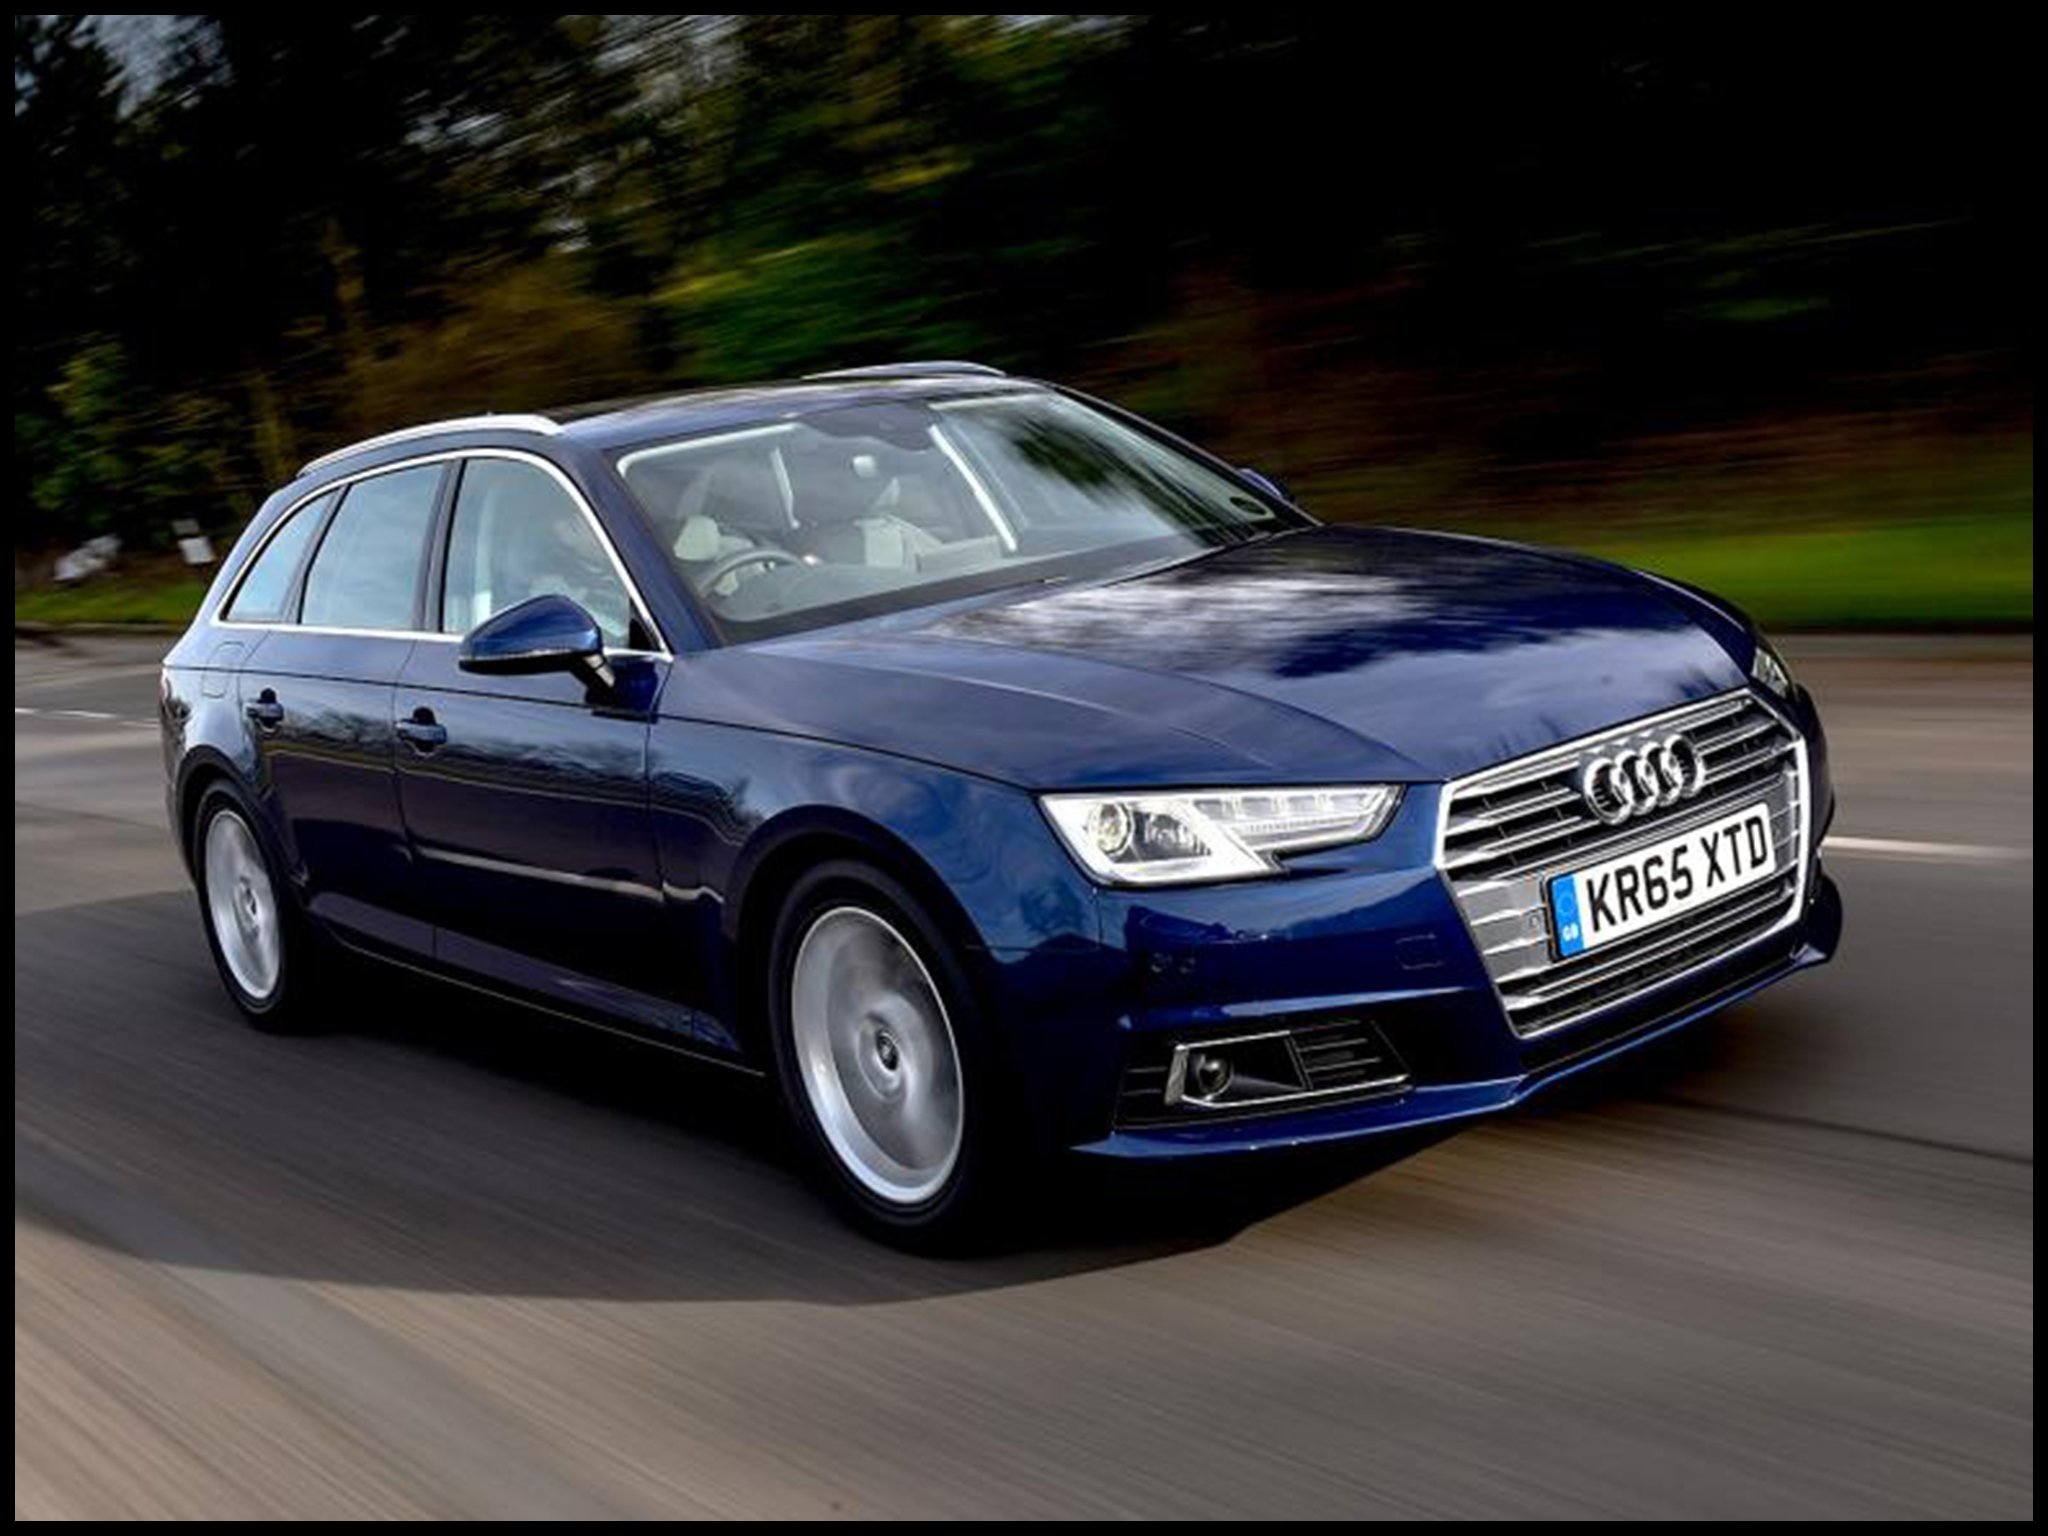 Audi A4 Avant 2 0 TDI 150 Ultra Sport car review fering economy and style